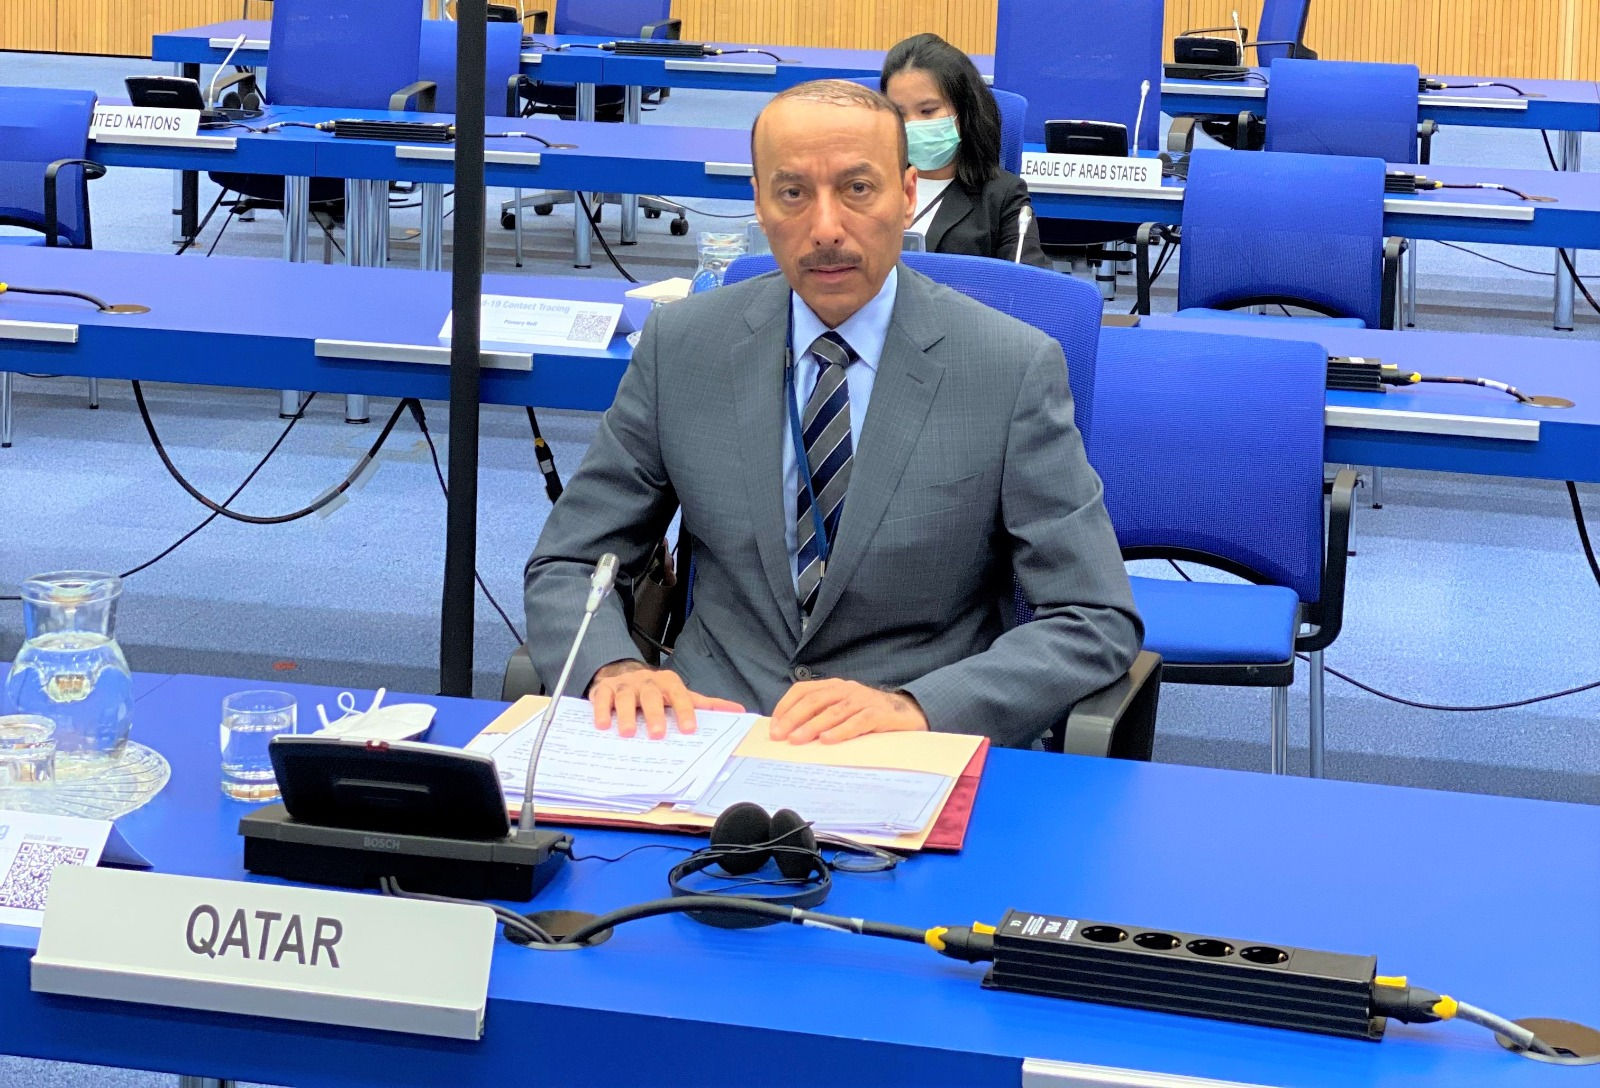 Qatar's Ambassador to Austria Delivers Arab Group's Statements on Israeli Nuclear Capabilities, Application of IAEA Safeguards in Middle East